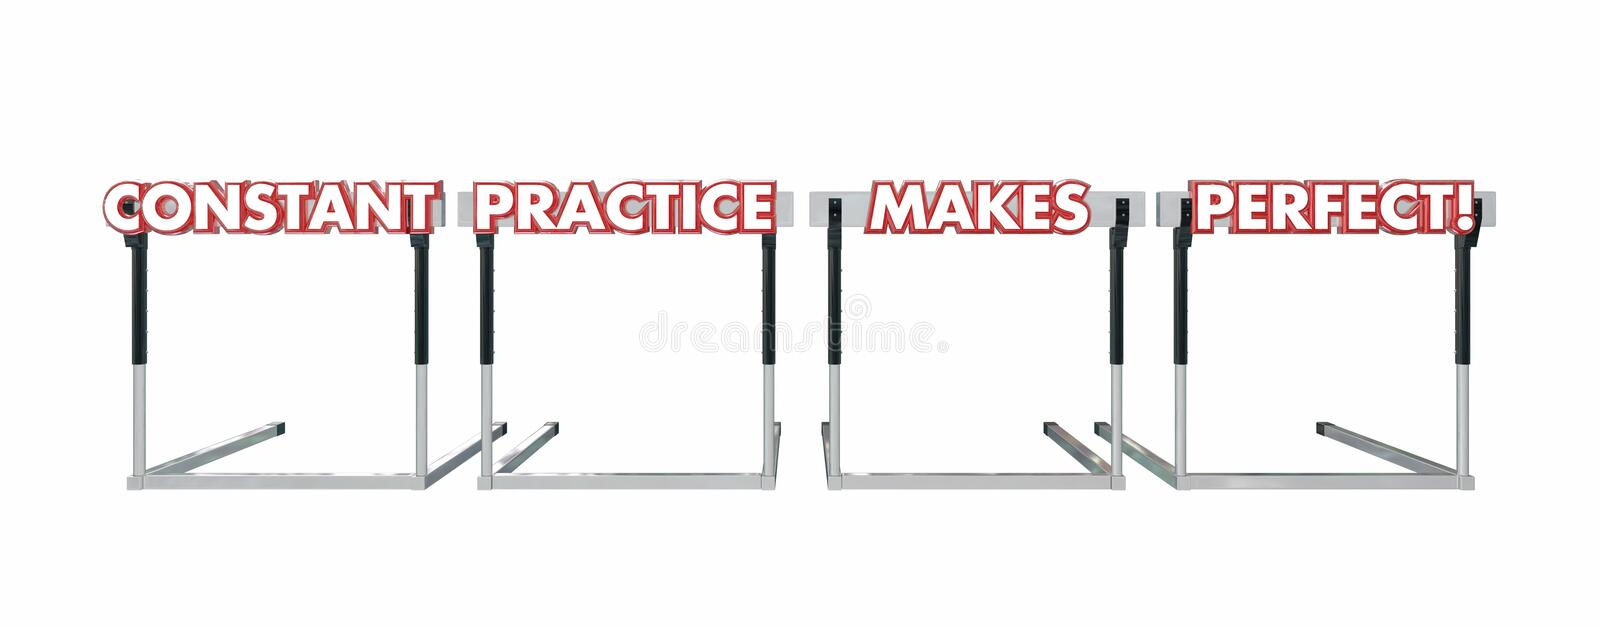 Constant Practice Makes Perfect Jumping Over Hurdles. Words stock illustration